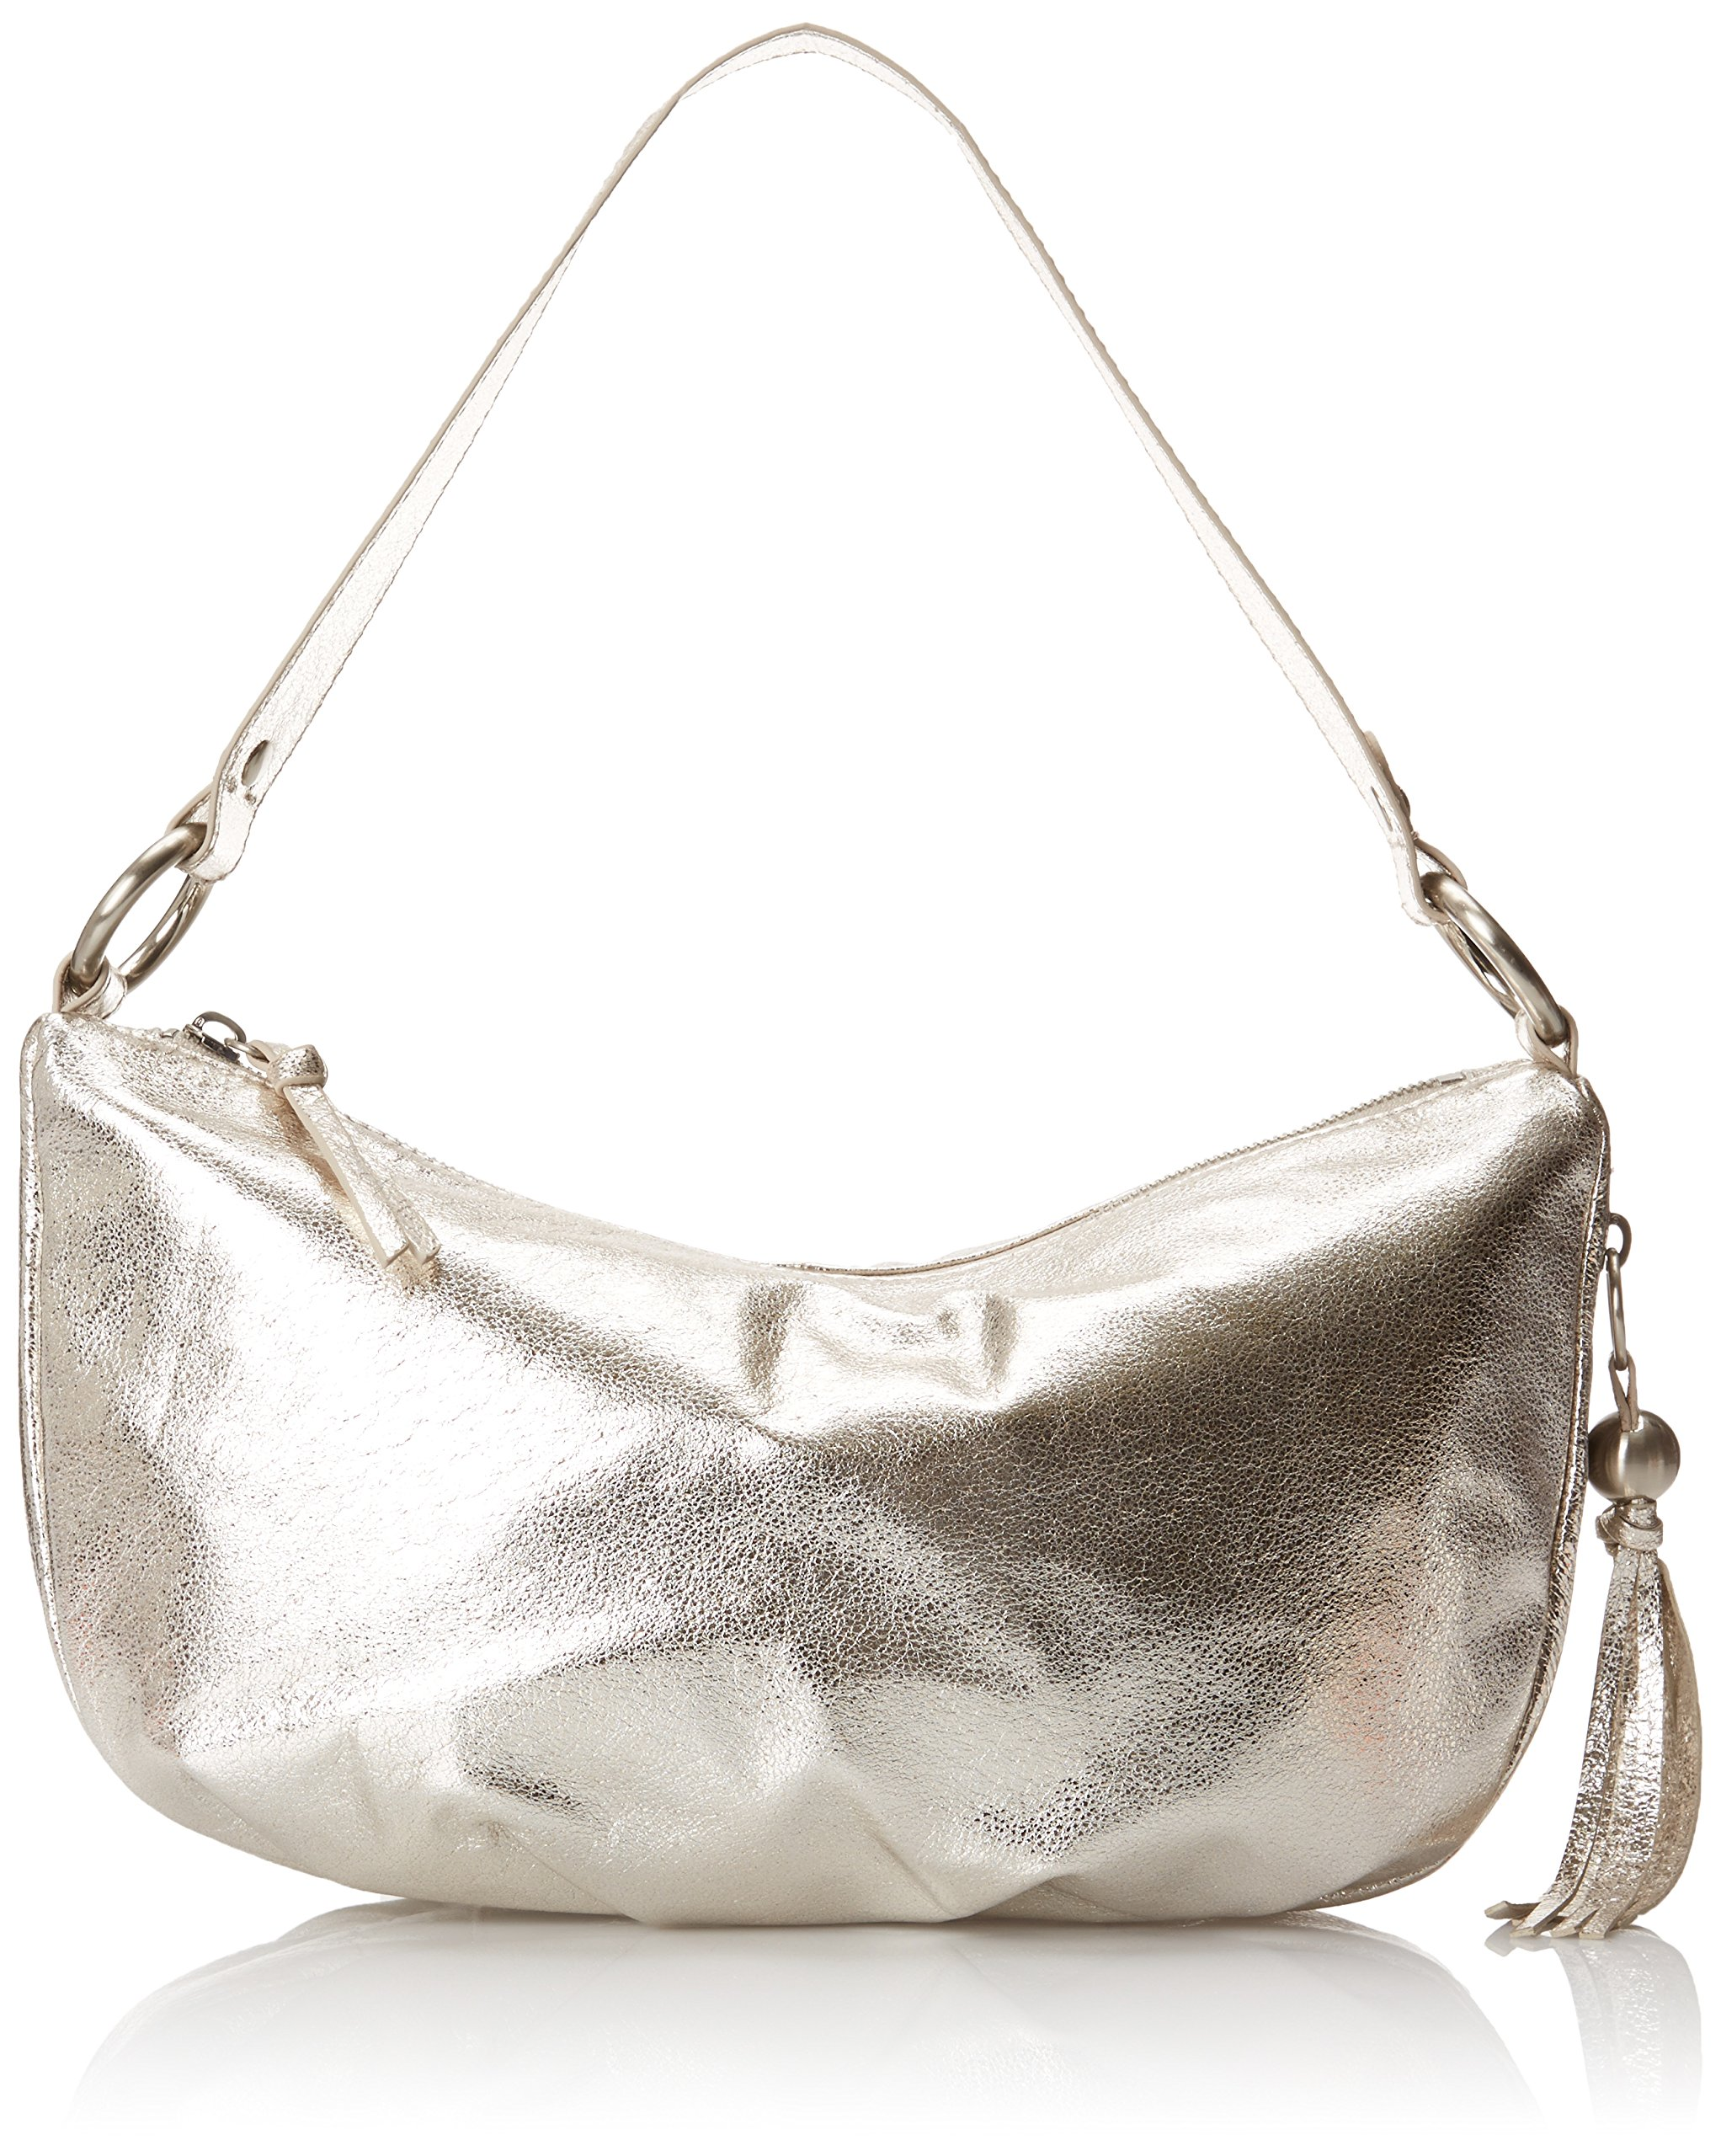 HOBO Phoebe Shoulder Hobo Shoulder Bag, Metallic, One Size by HOBO